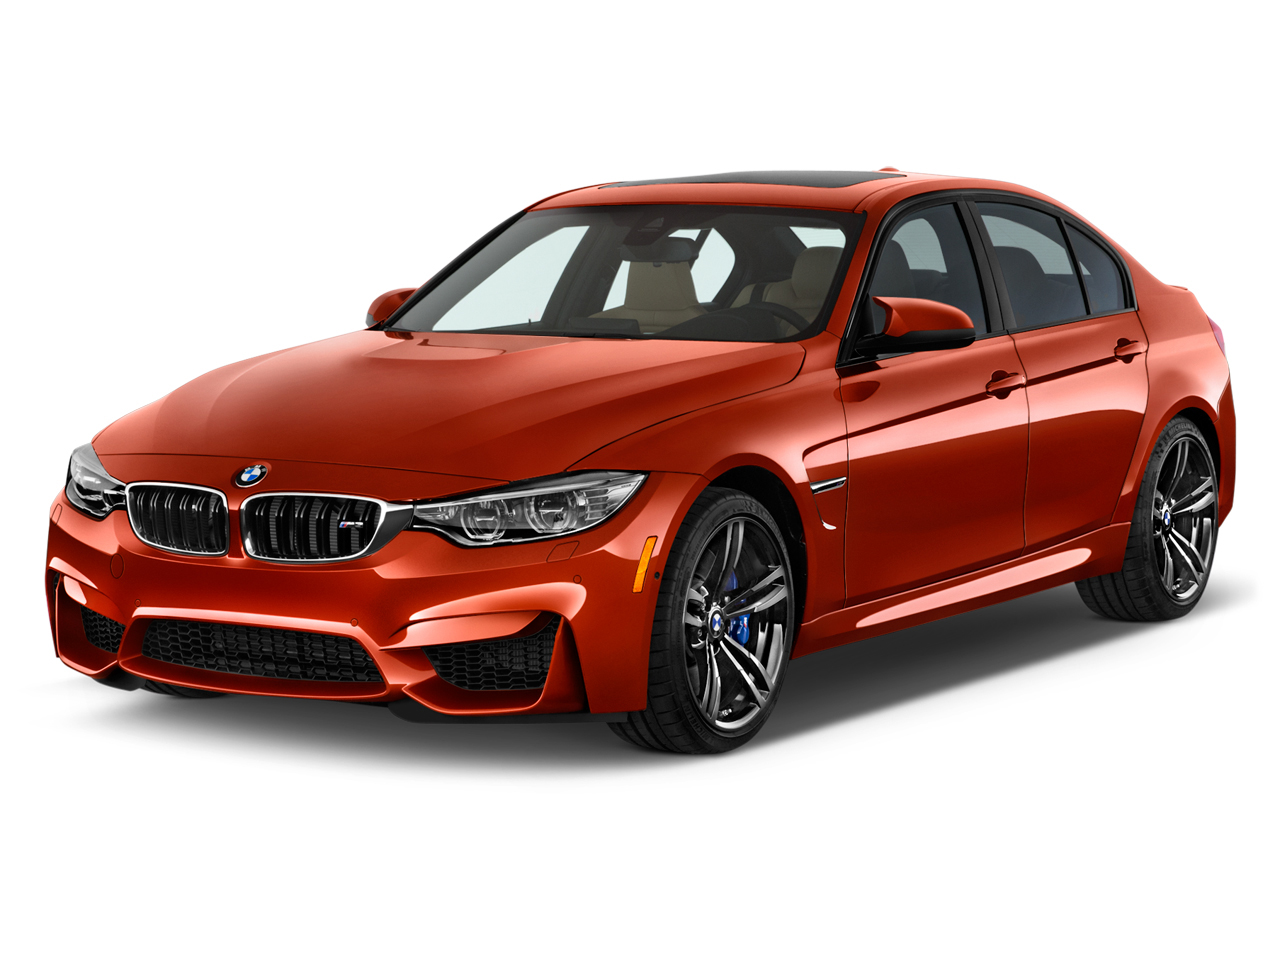 BMW Convertible bmw m3 egypt 2017 BMW M3 Sedan Prices in Egypt, Gulf Specs & Reviews for Cairo ...